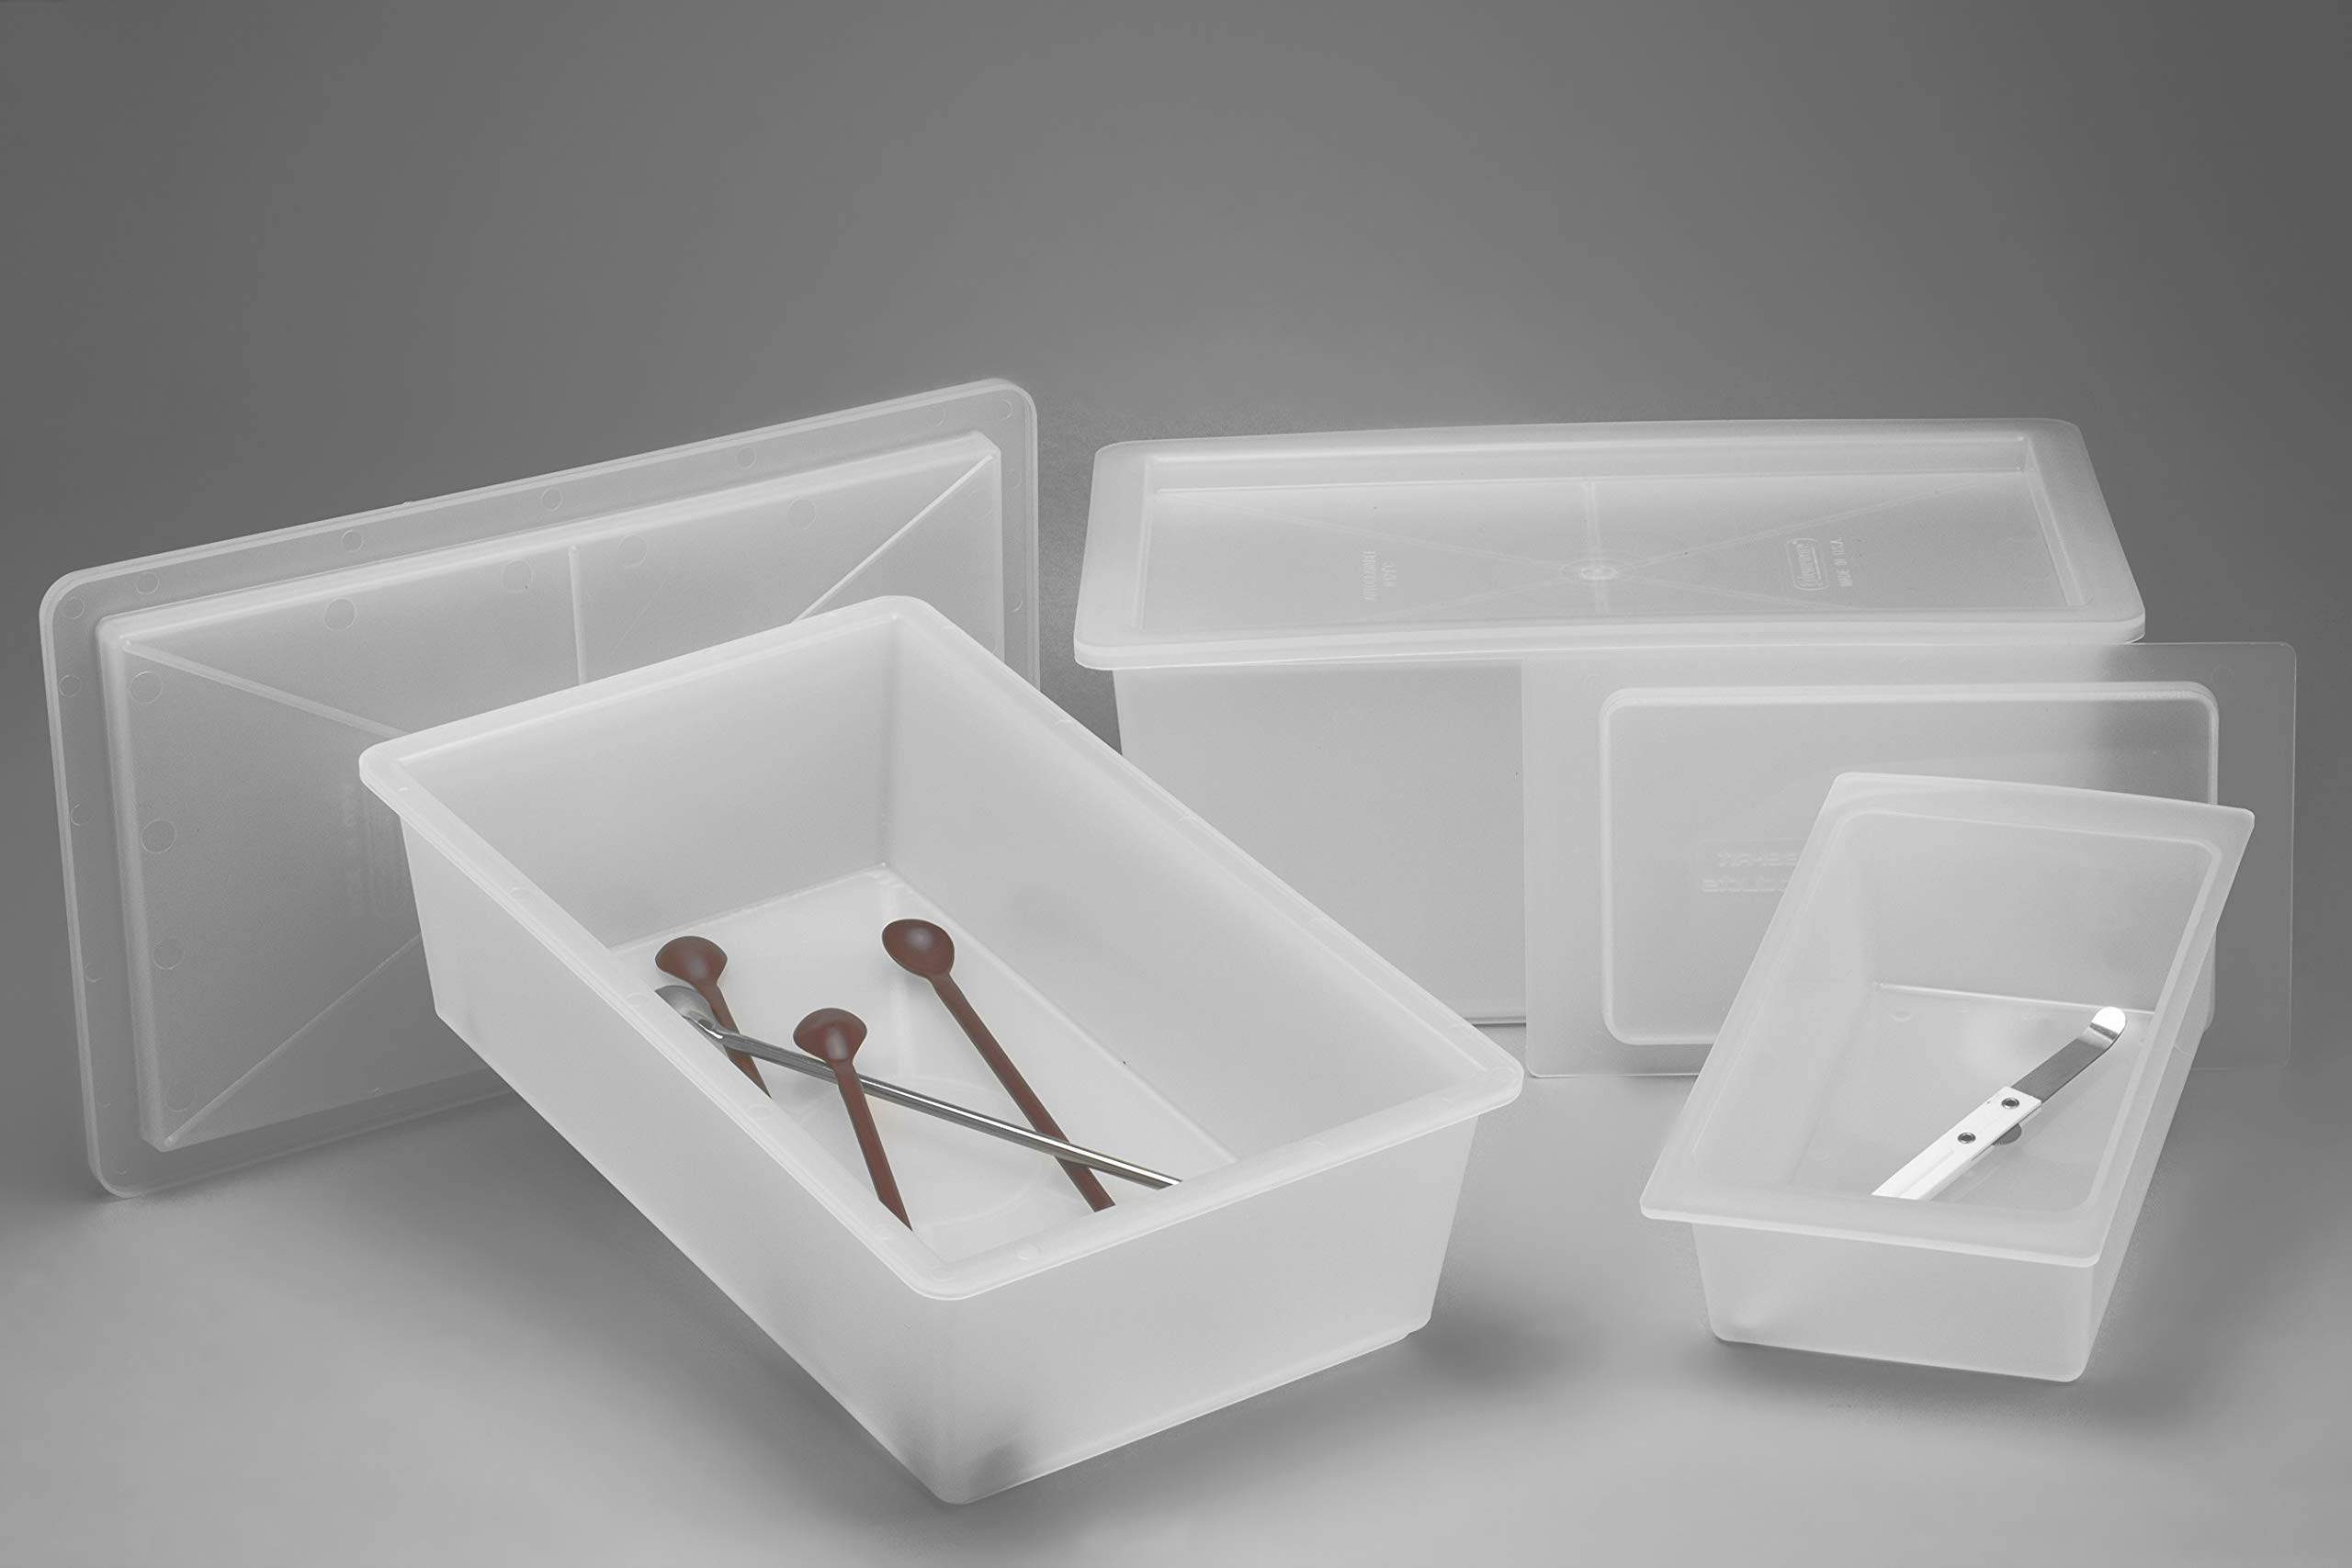 Polypropylene Instrument Tray with Cover, 11 x 6 x 5 in. by SP Scienceware